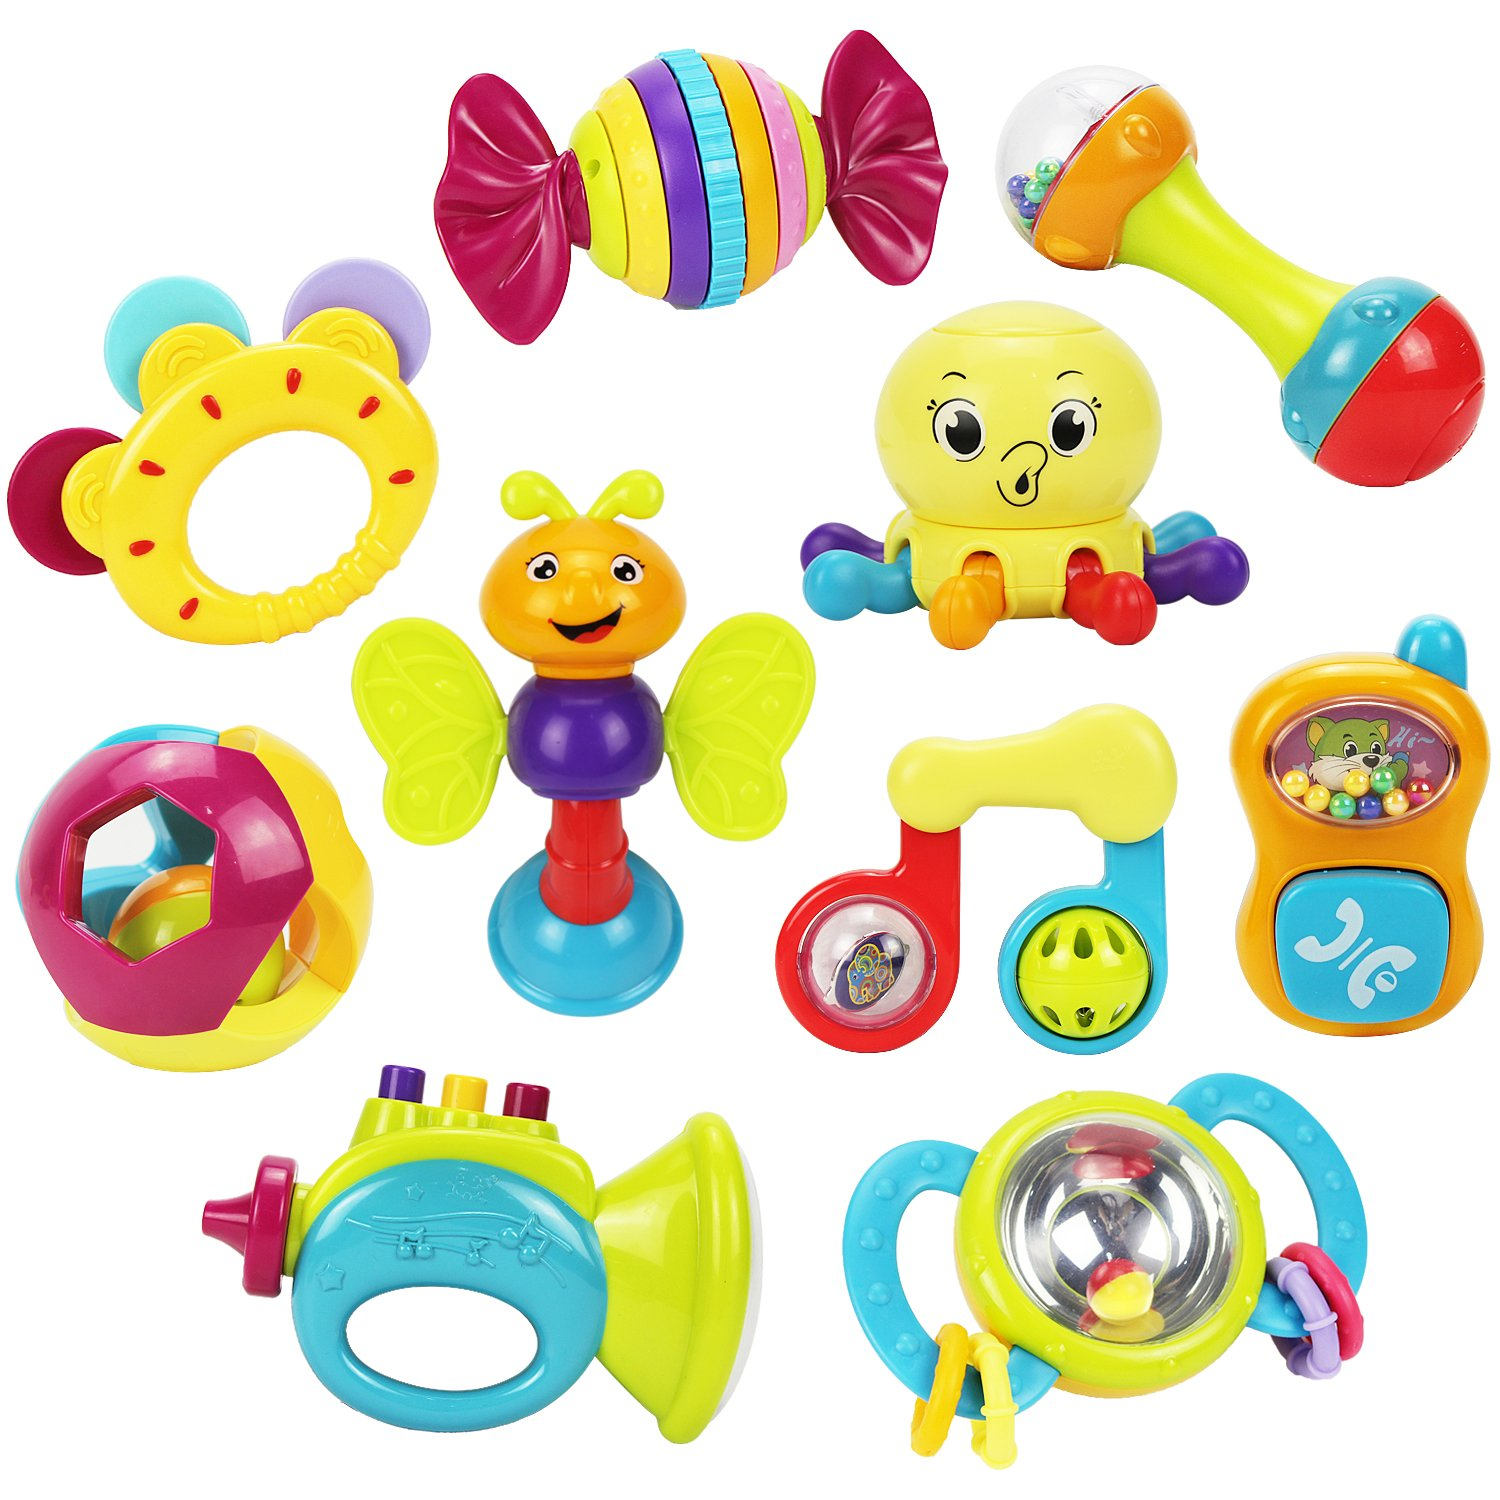 iPlay, iLearn 10pcs Baby Rattles Teether, Shaker, Grab and Spin Rattle, Musical Toy Set, Early Educational Toys for 3, 6, 9, 12 Month Baby Infant, Newborn by iPlay, iLearn (Image #1)